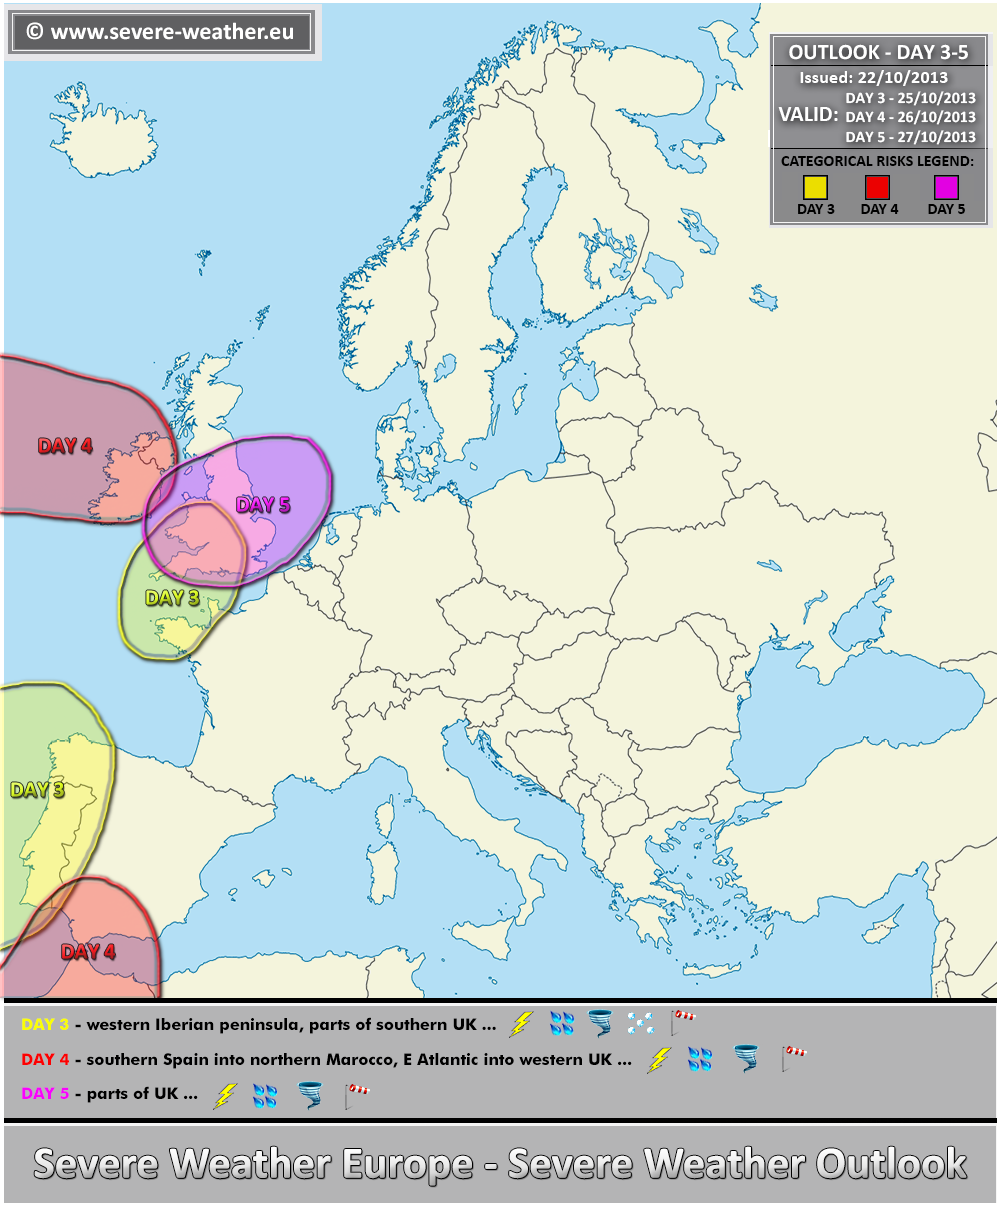 outlook day 3 5 valid 25 10 2013 27 10 2013 severe weather europe